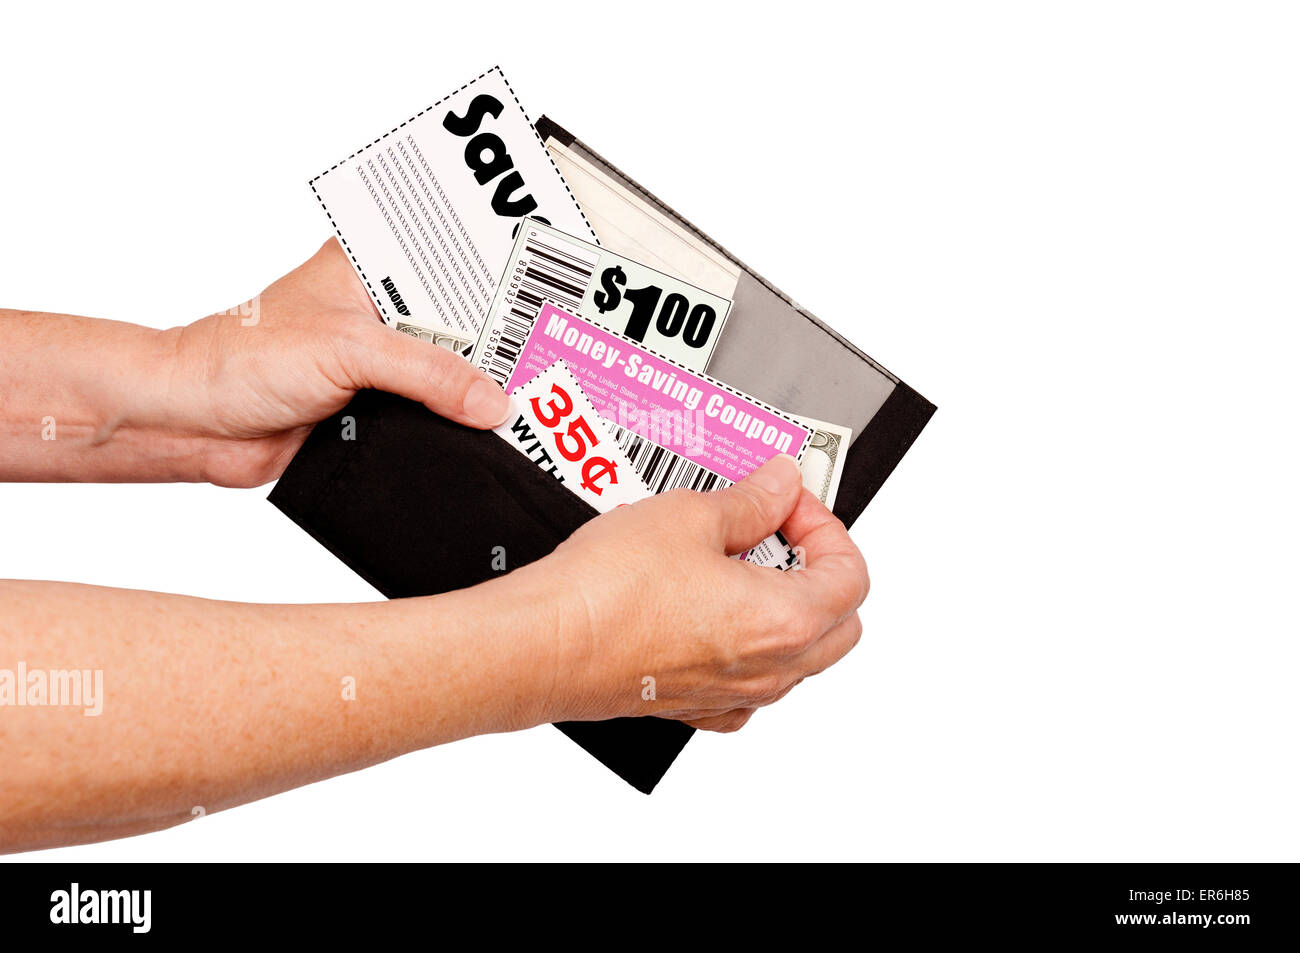 Thrifty Shopper Using Coupons..Hands taking coupons from wallet. - Stock Image